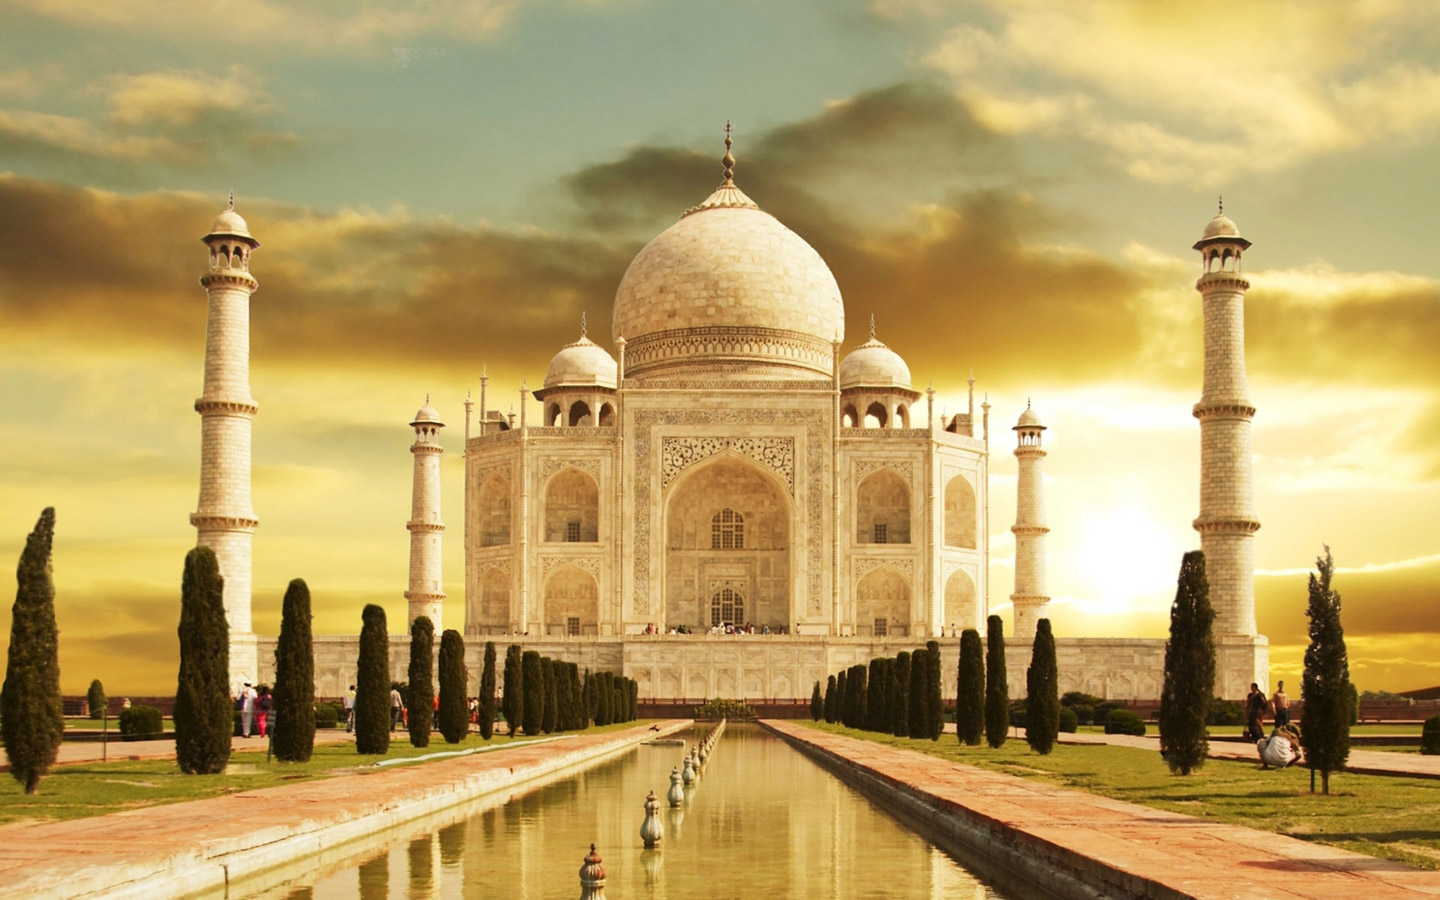 http://4.bp.blogspot.com/_14grgzfQGYA/TPcBpaMa4GI/AAAAAAAACWM/tuKfGsD2Pm0/s1600/taj-mahal-hd-widescreen-wallpapers-11.jpeg